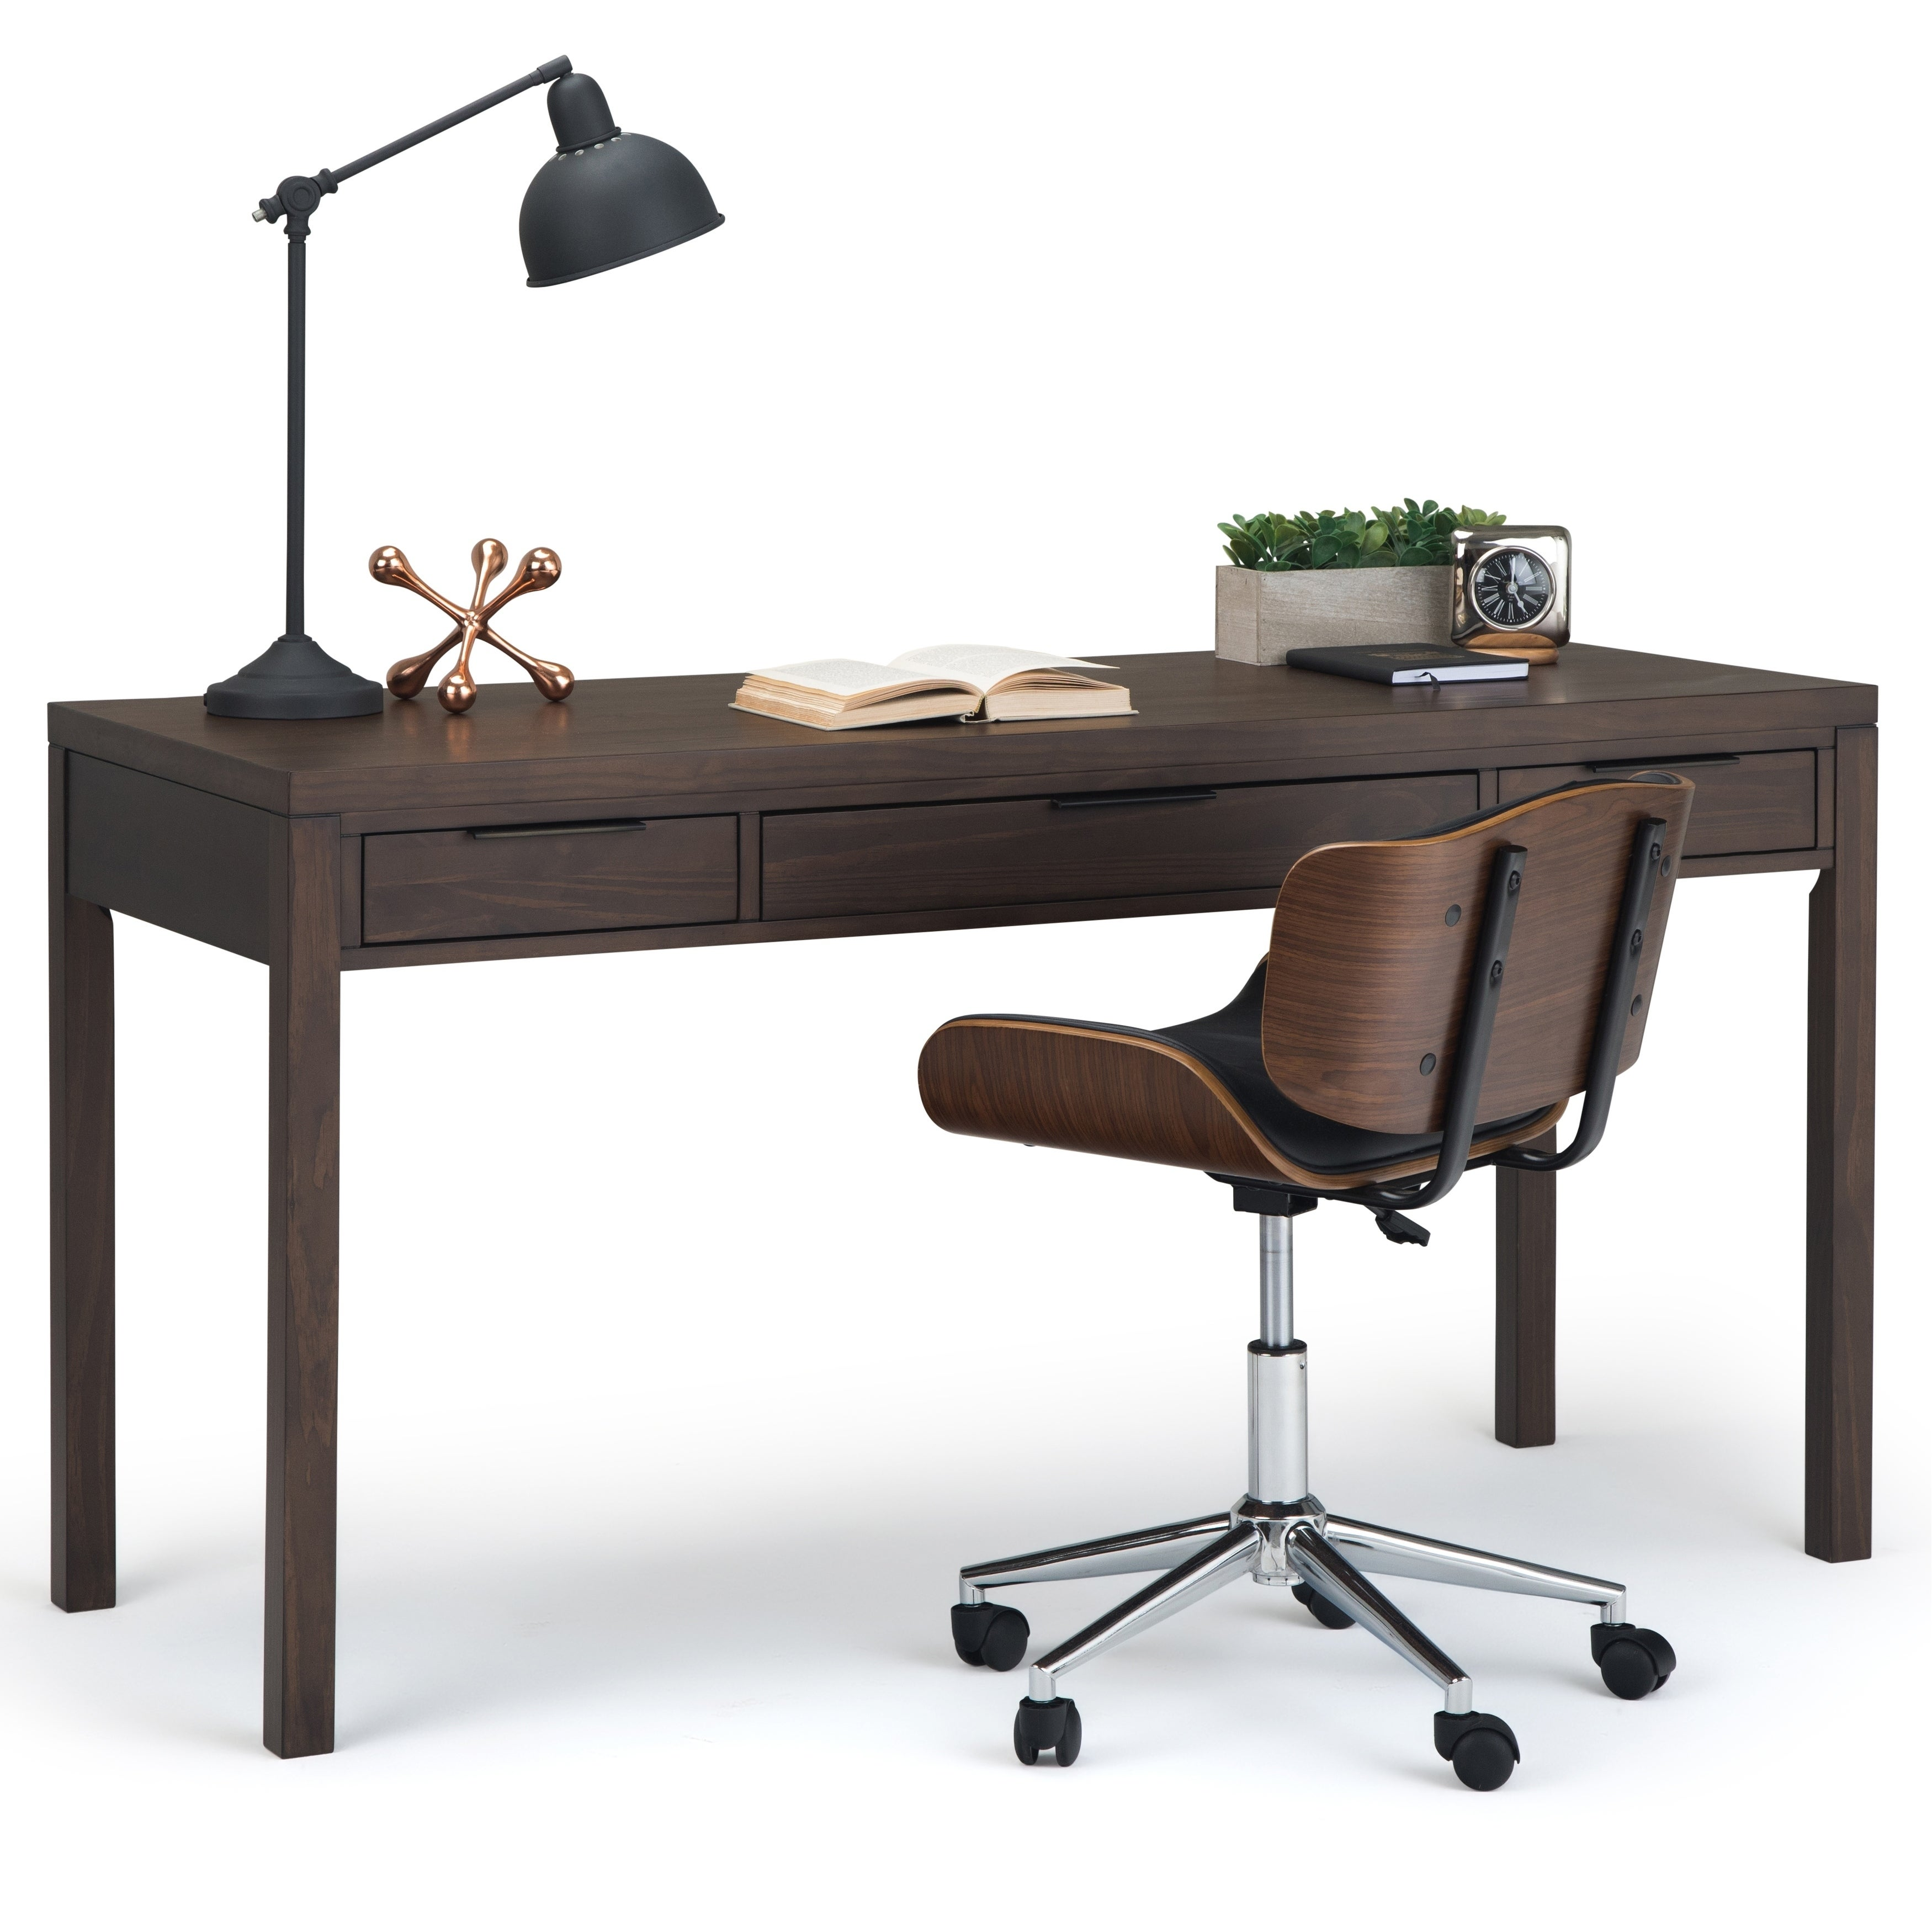 39 Inch Wide Writing Desk